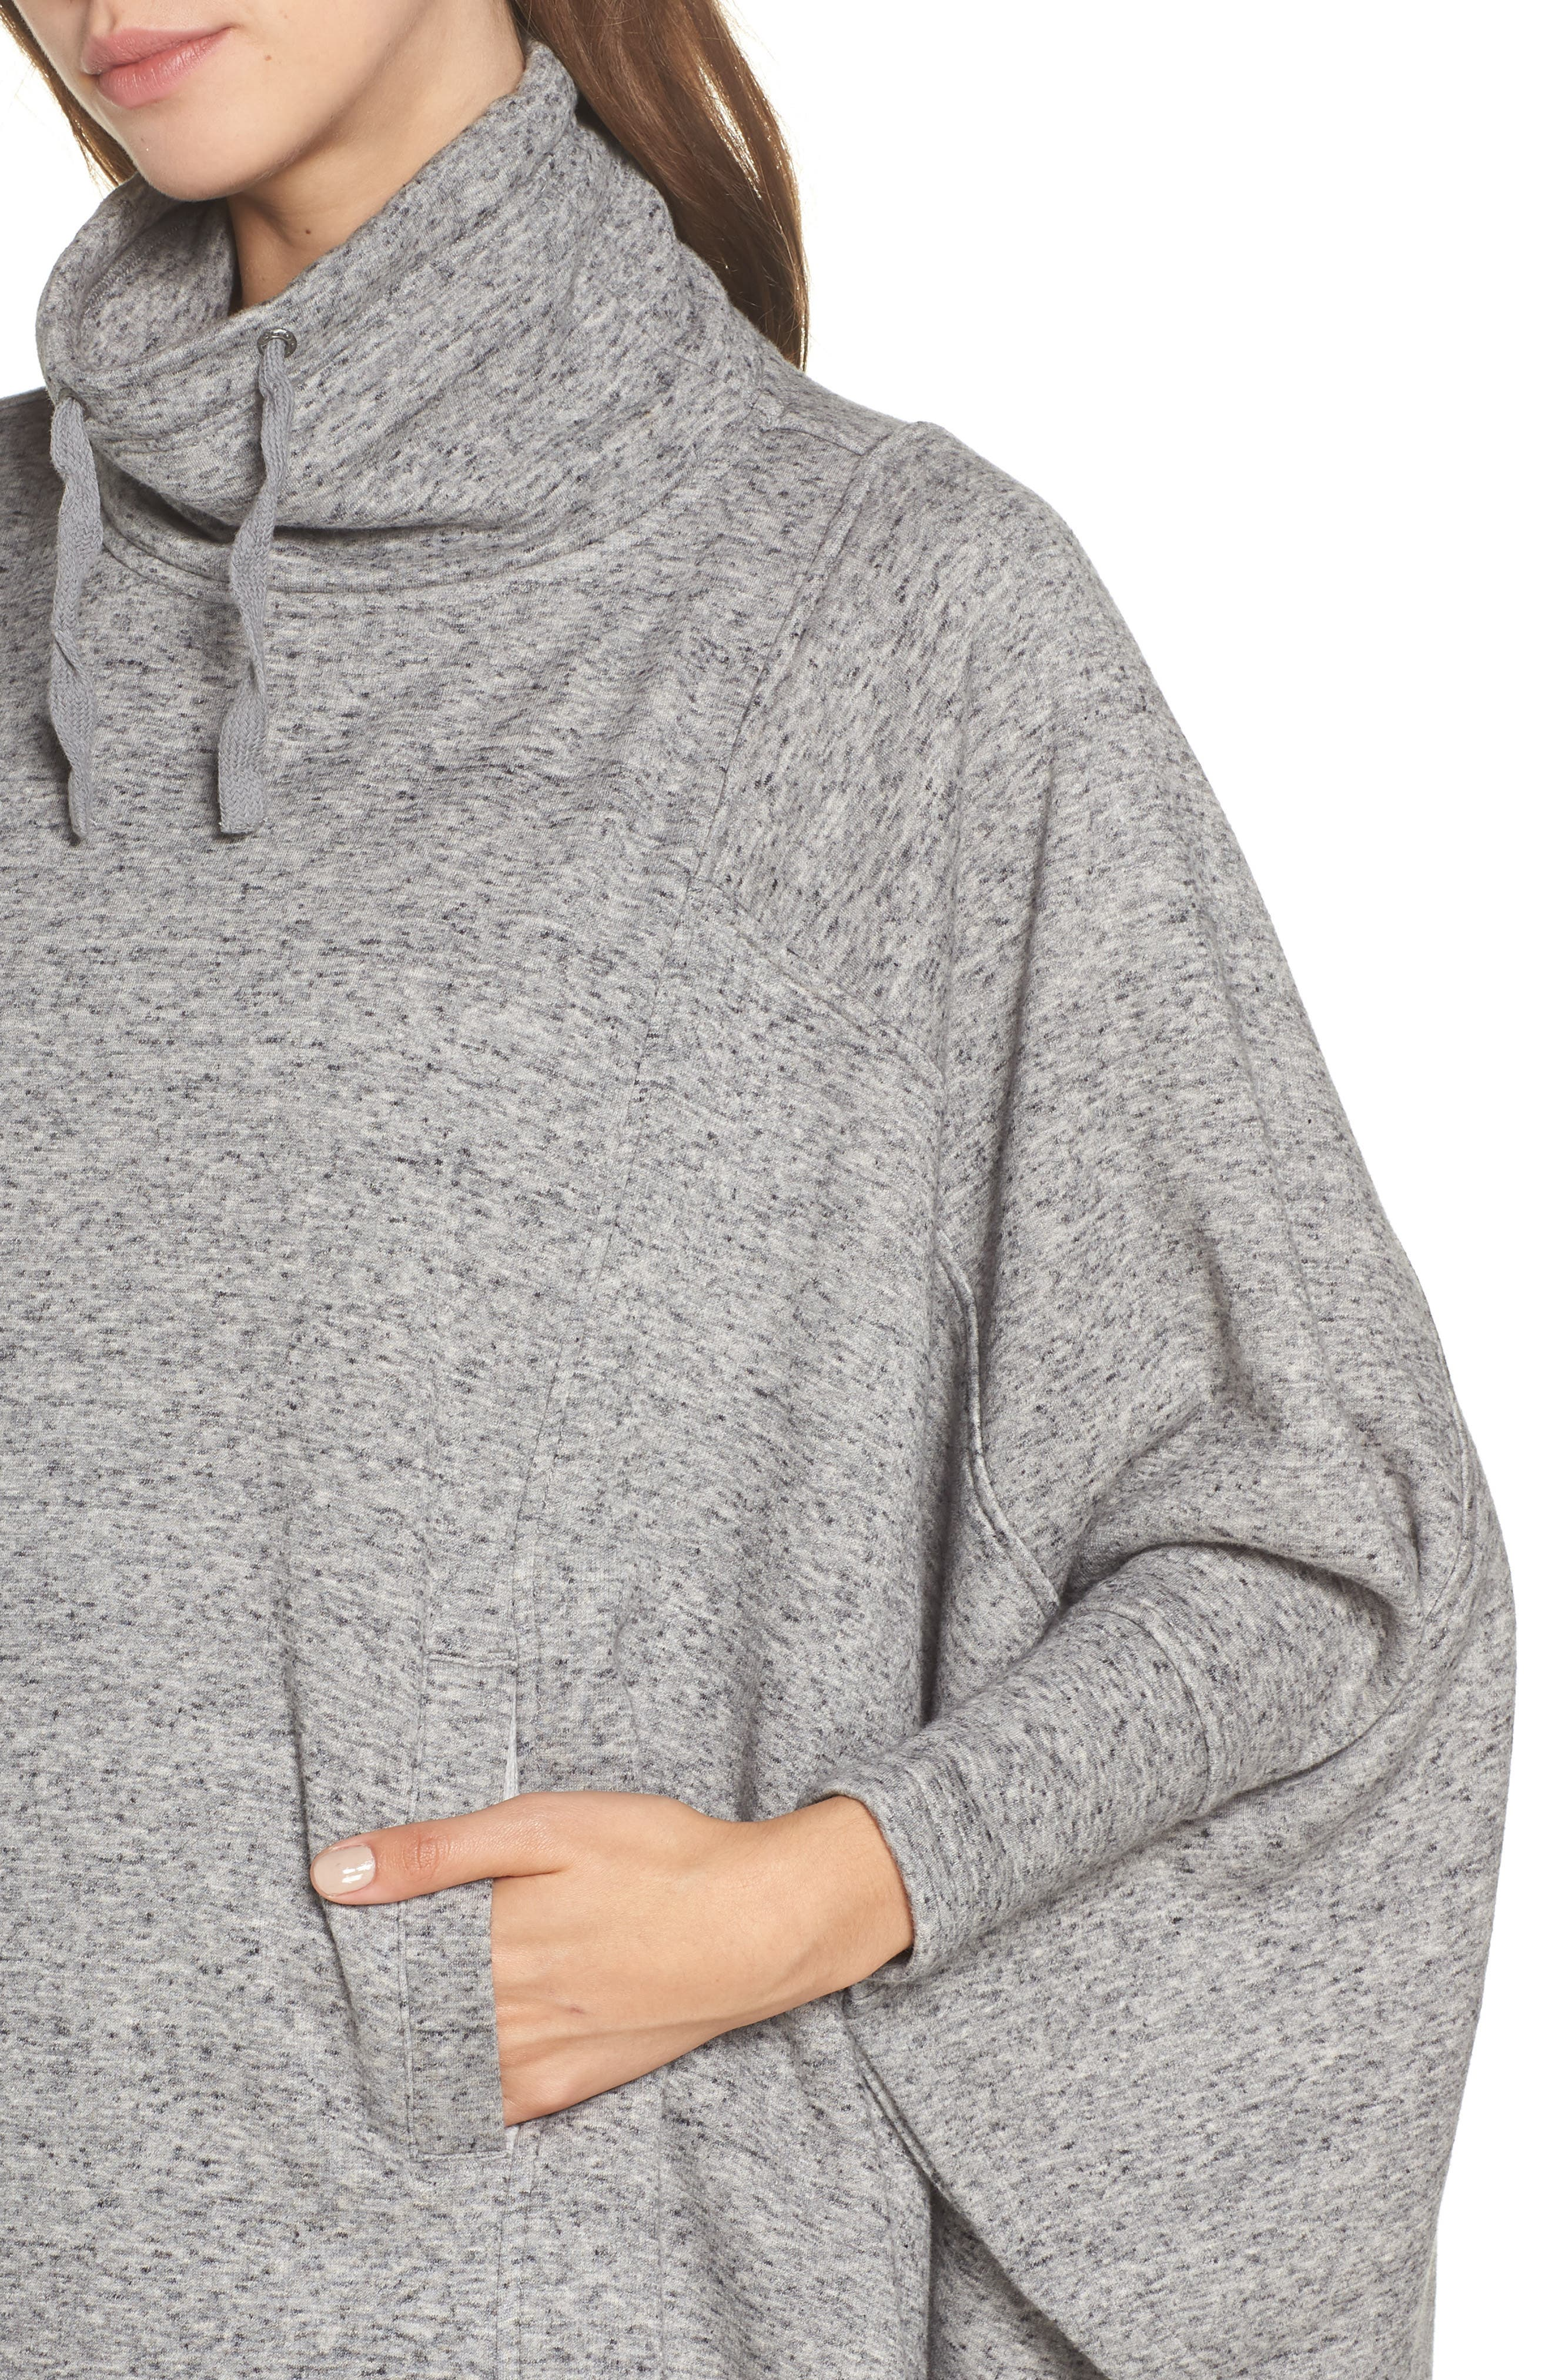 Pichot Turtleneck Poncho,                             Alternate thumbnail 4, color,                             GREY HEATHER